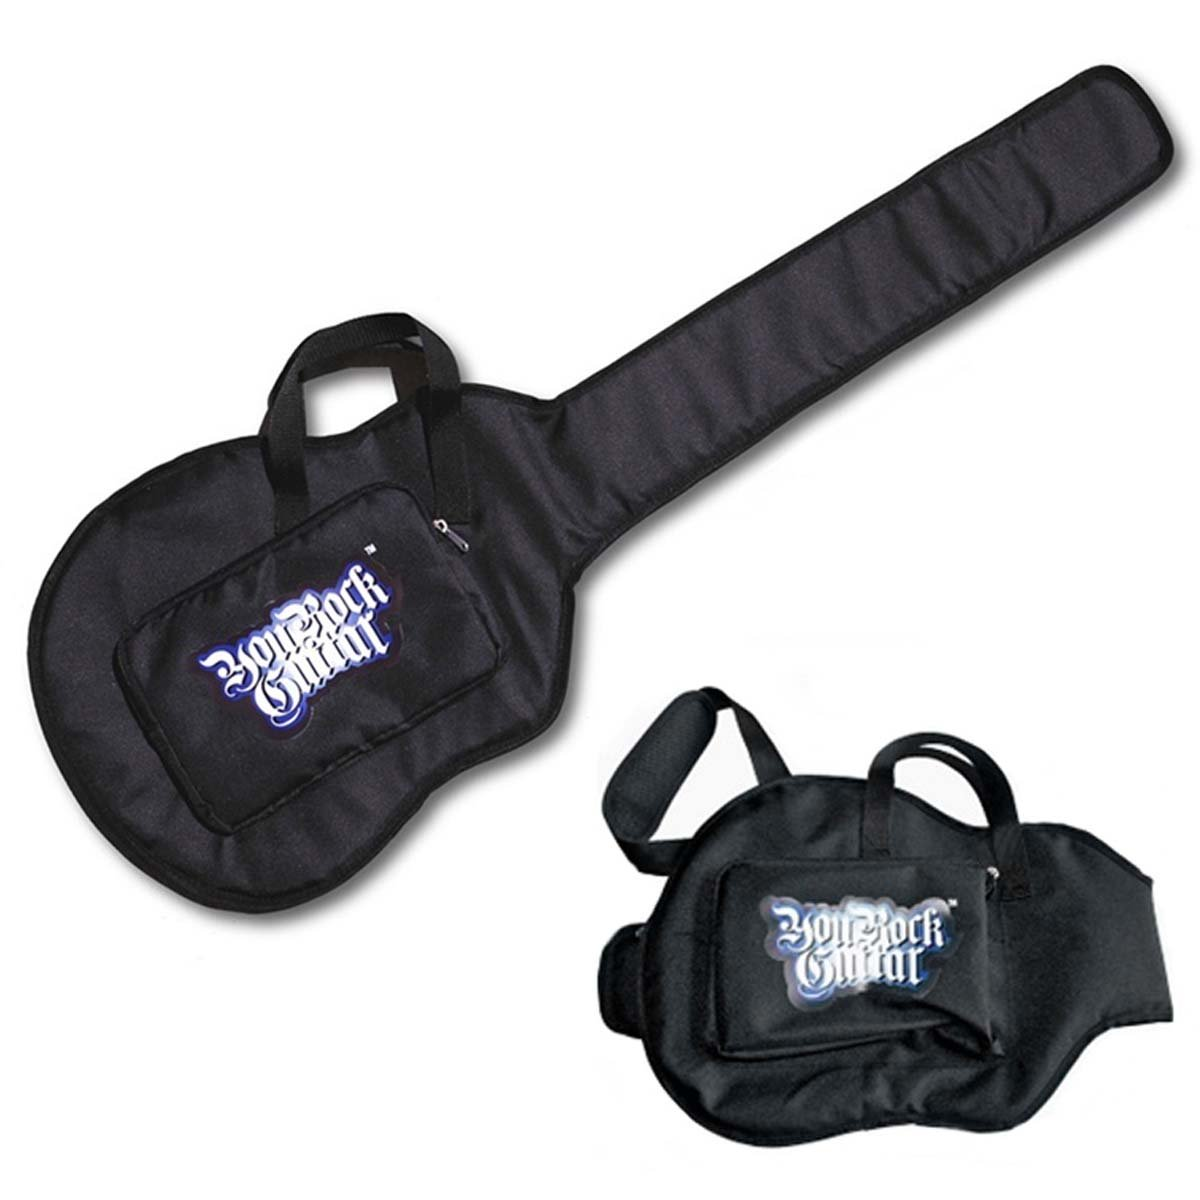 You Rock Guitar Yrg de 1000 Midi de guitarra controlador + Funda + Keepdrum Midi Cable 2 m: Amazon.es: Instrumentos musicales